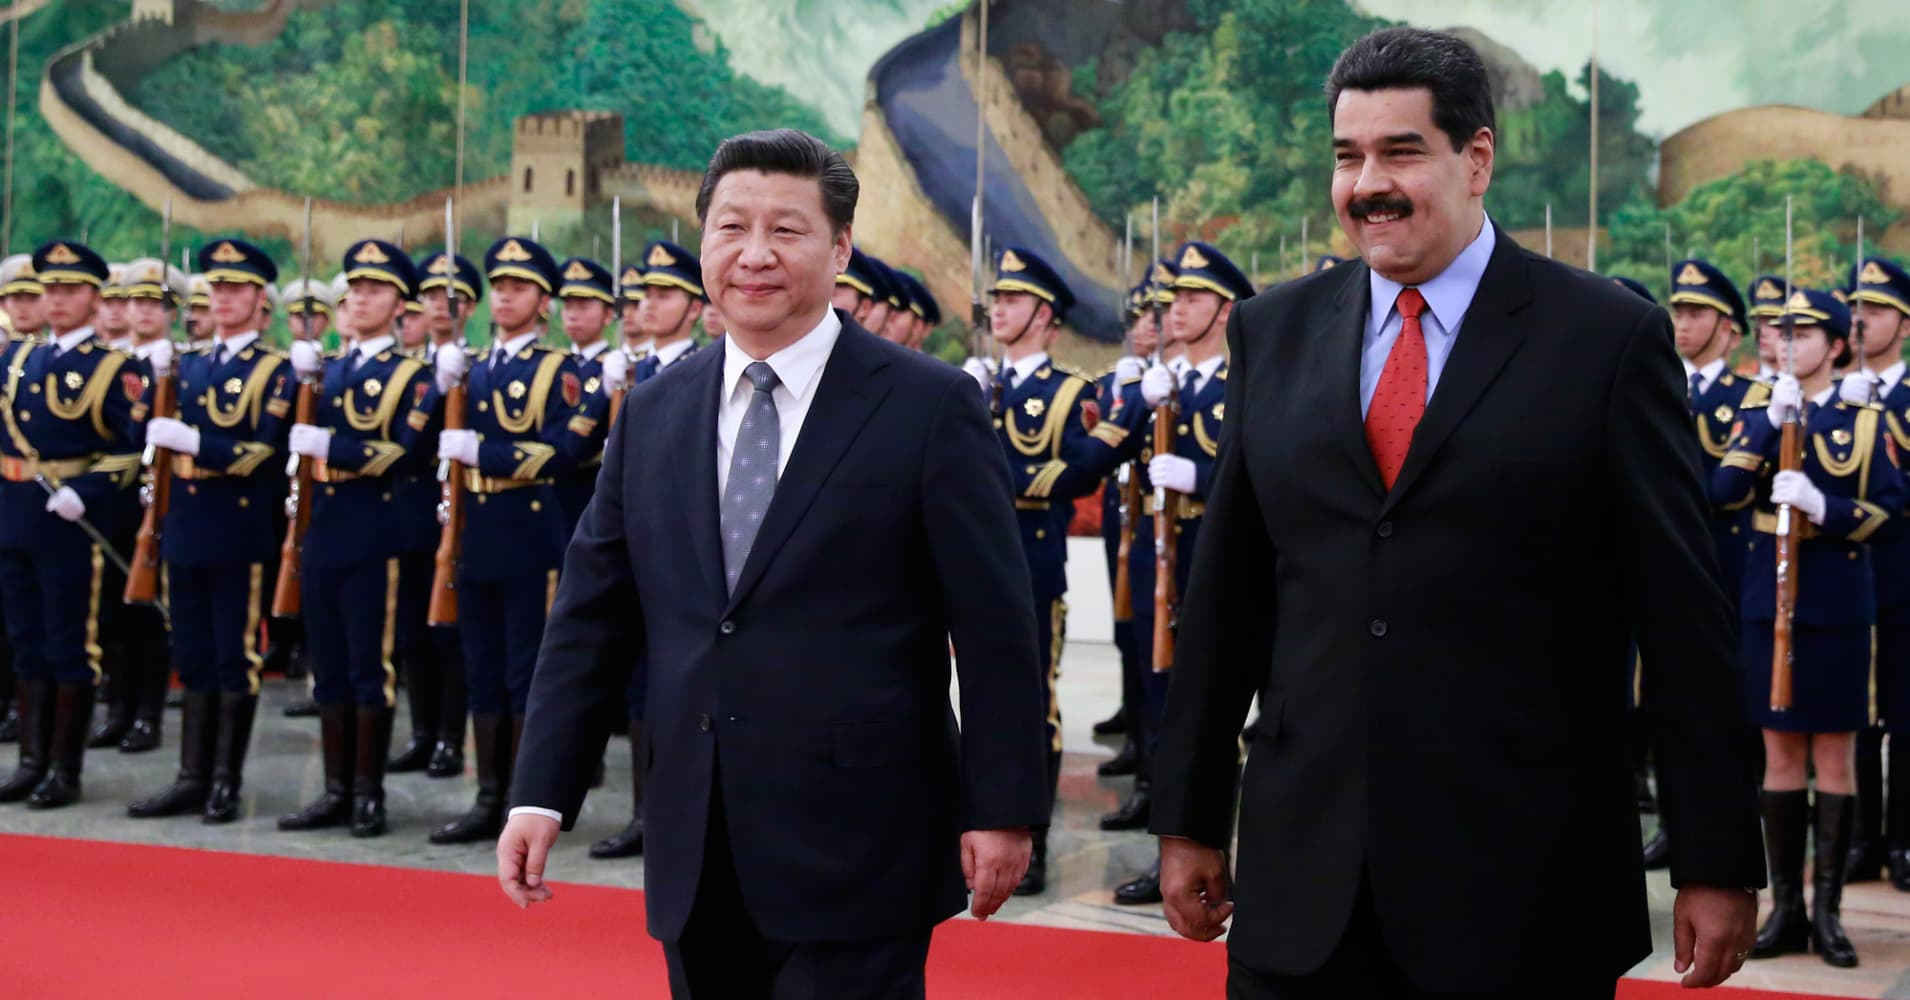 China and Russia loaned billions to Venezuela — and then the presidency went up for grabs